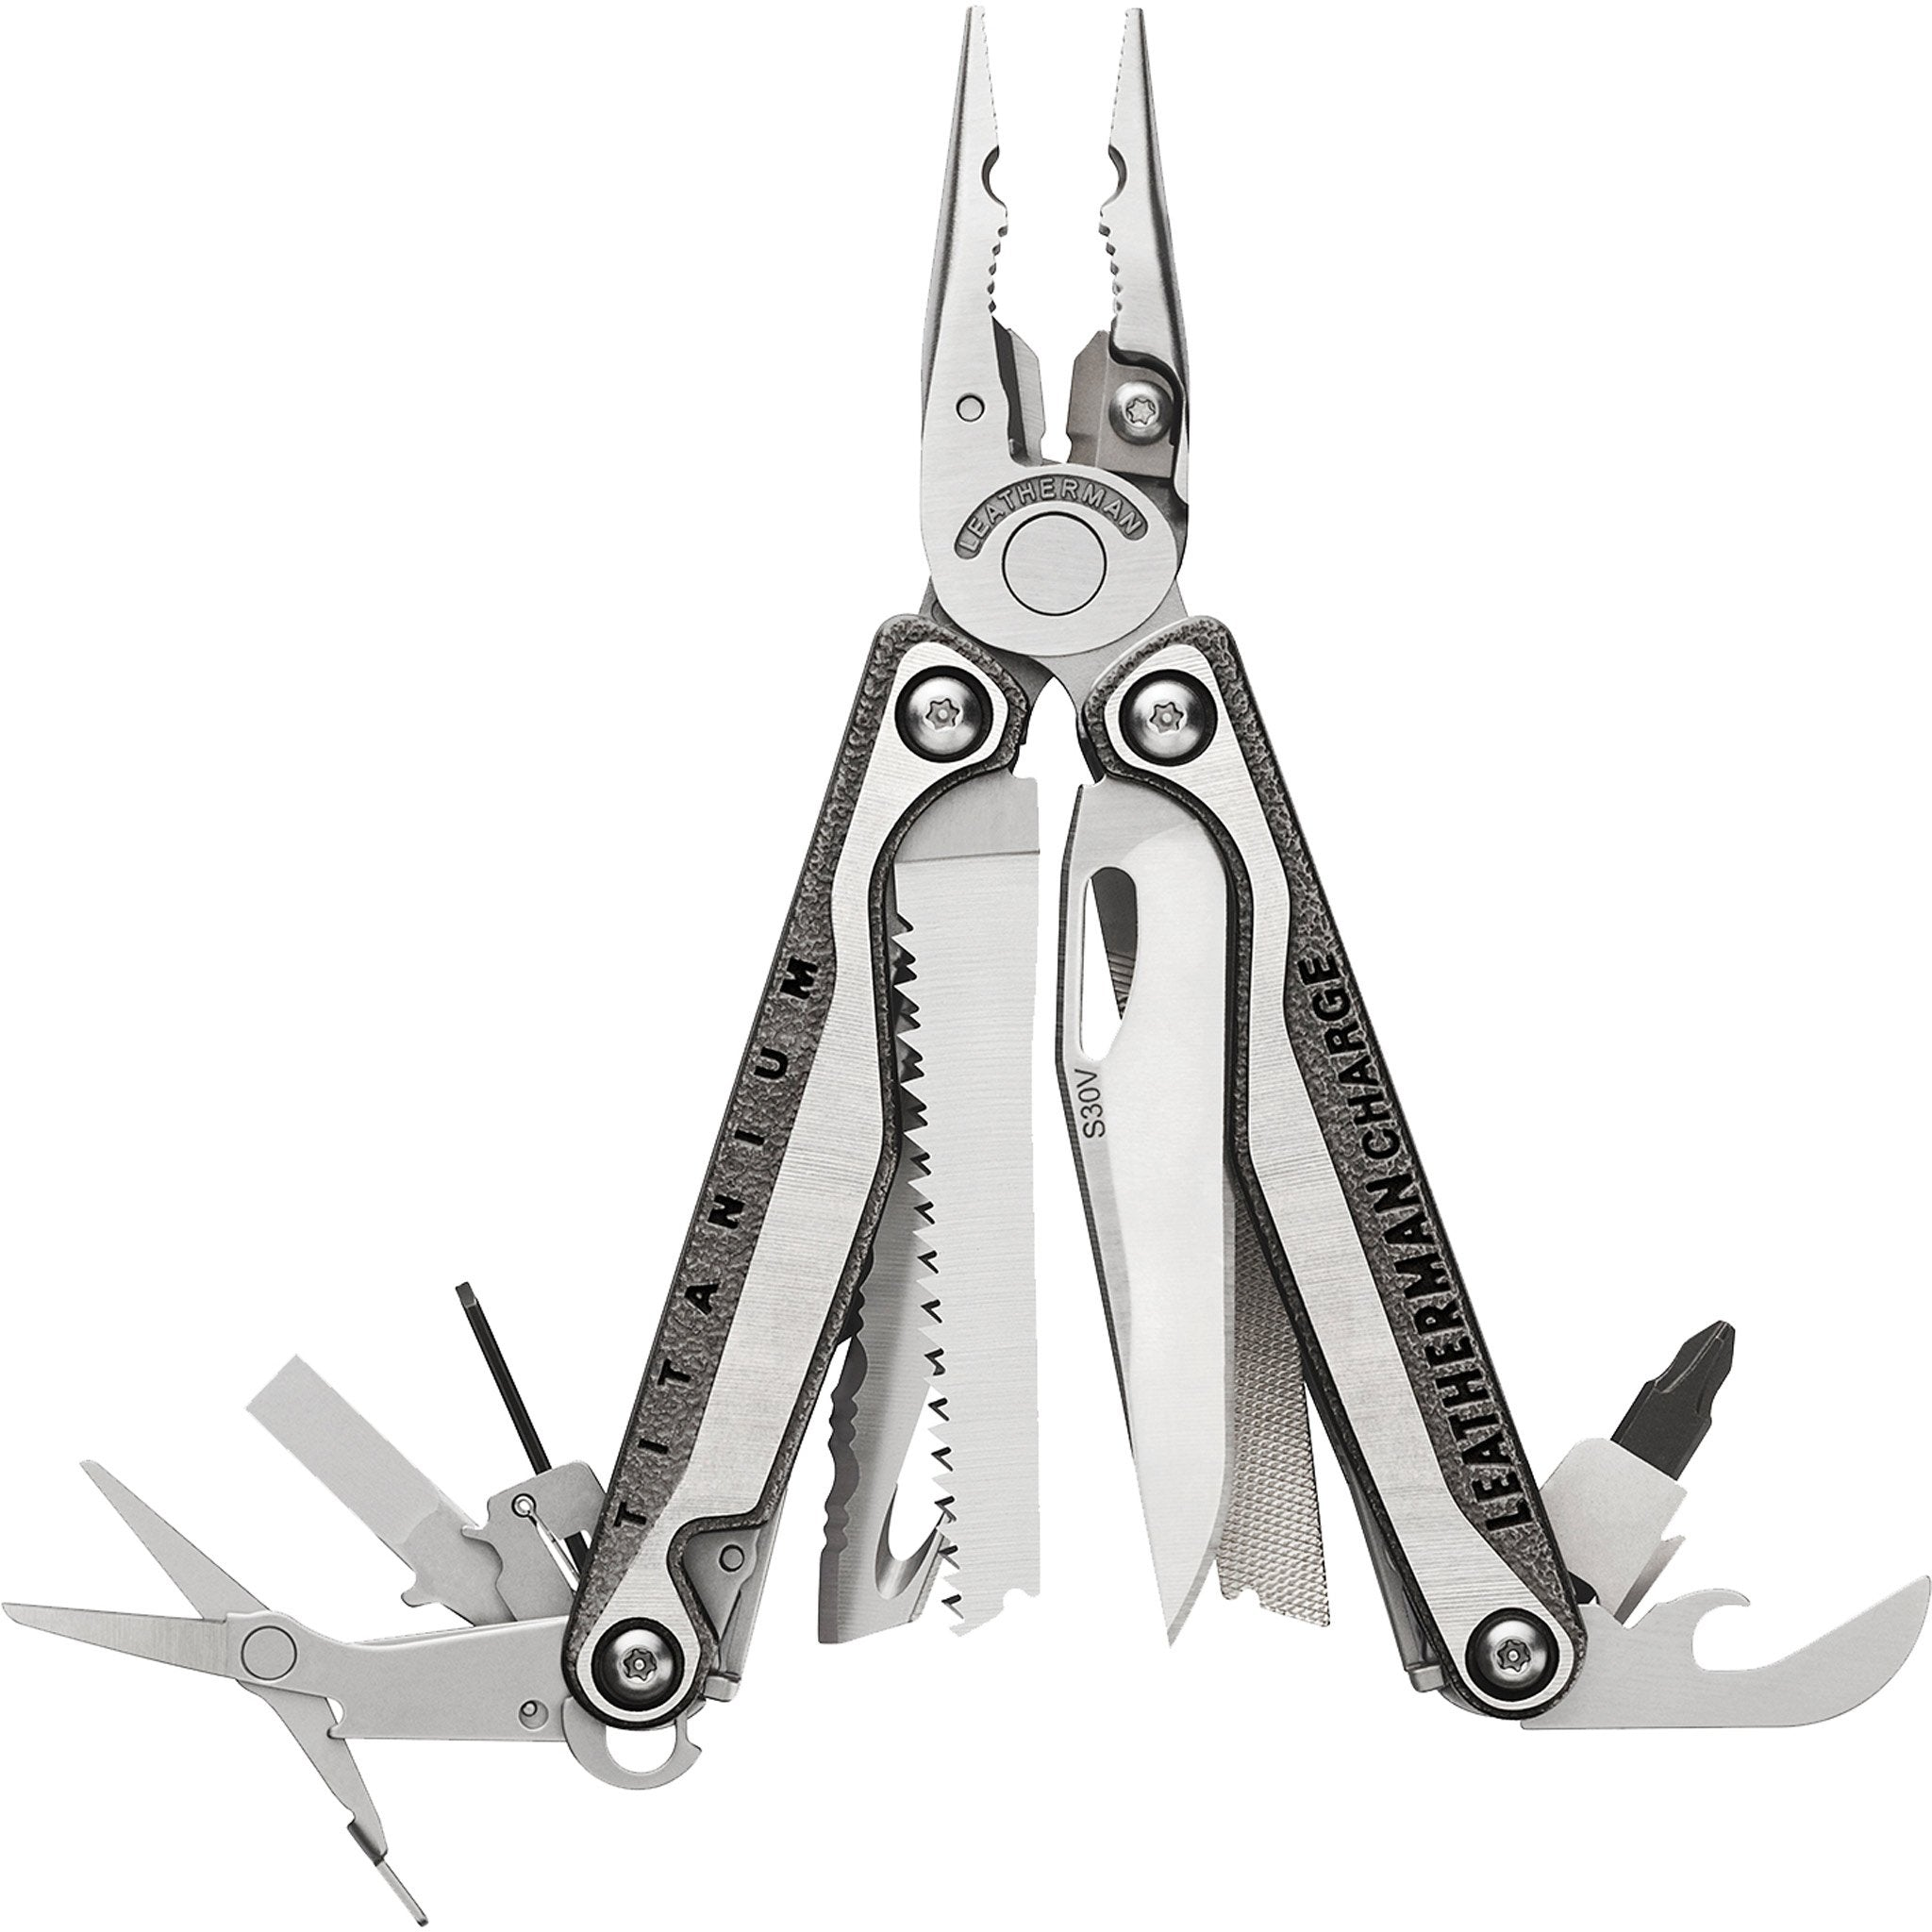 Leatherman Charge TTI - Arthur Beale